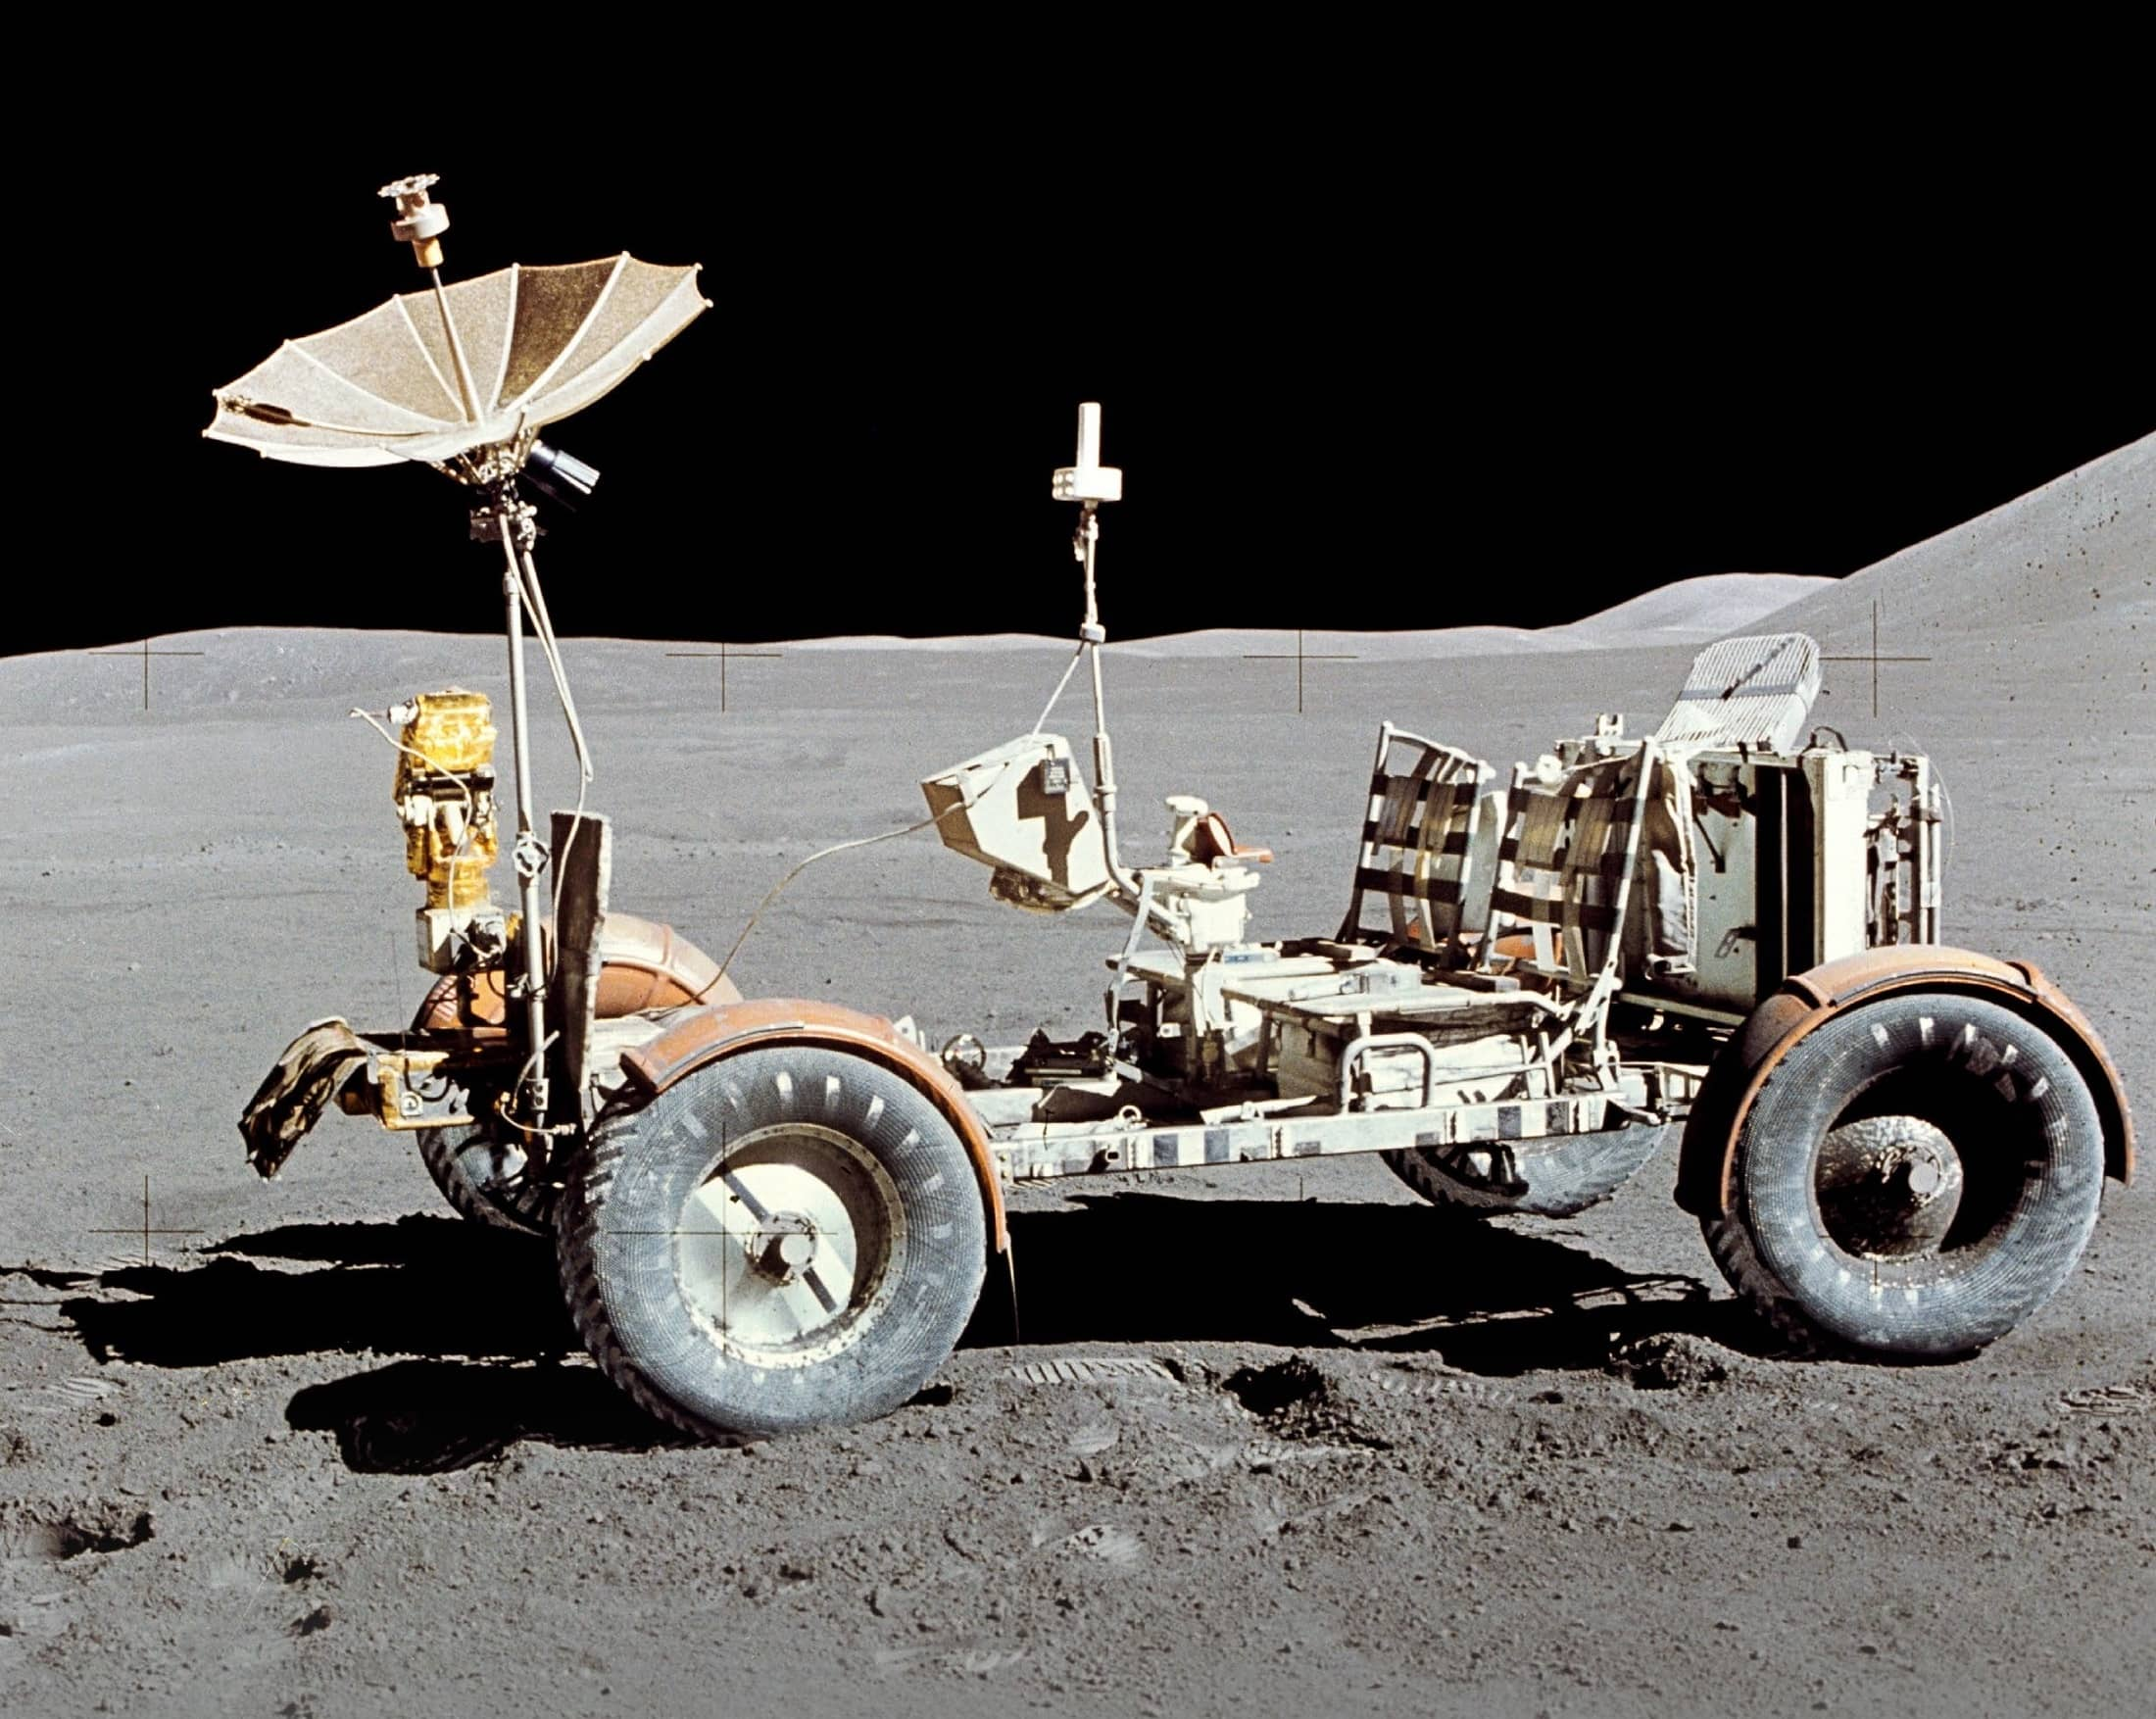 LUNAR ROVING VEHICLE 31 JULY 1971